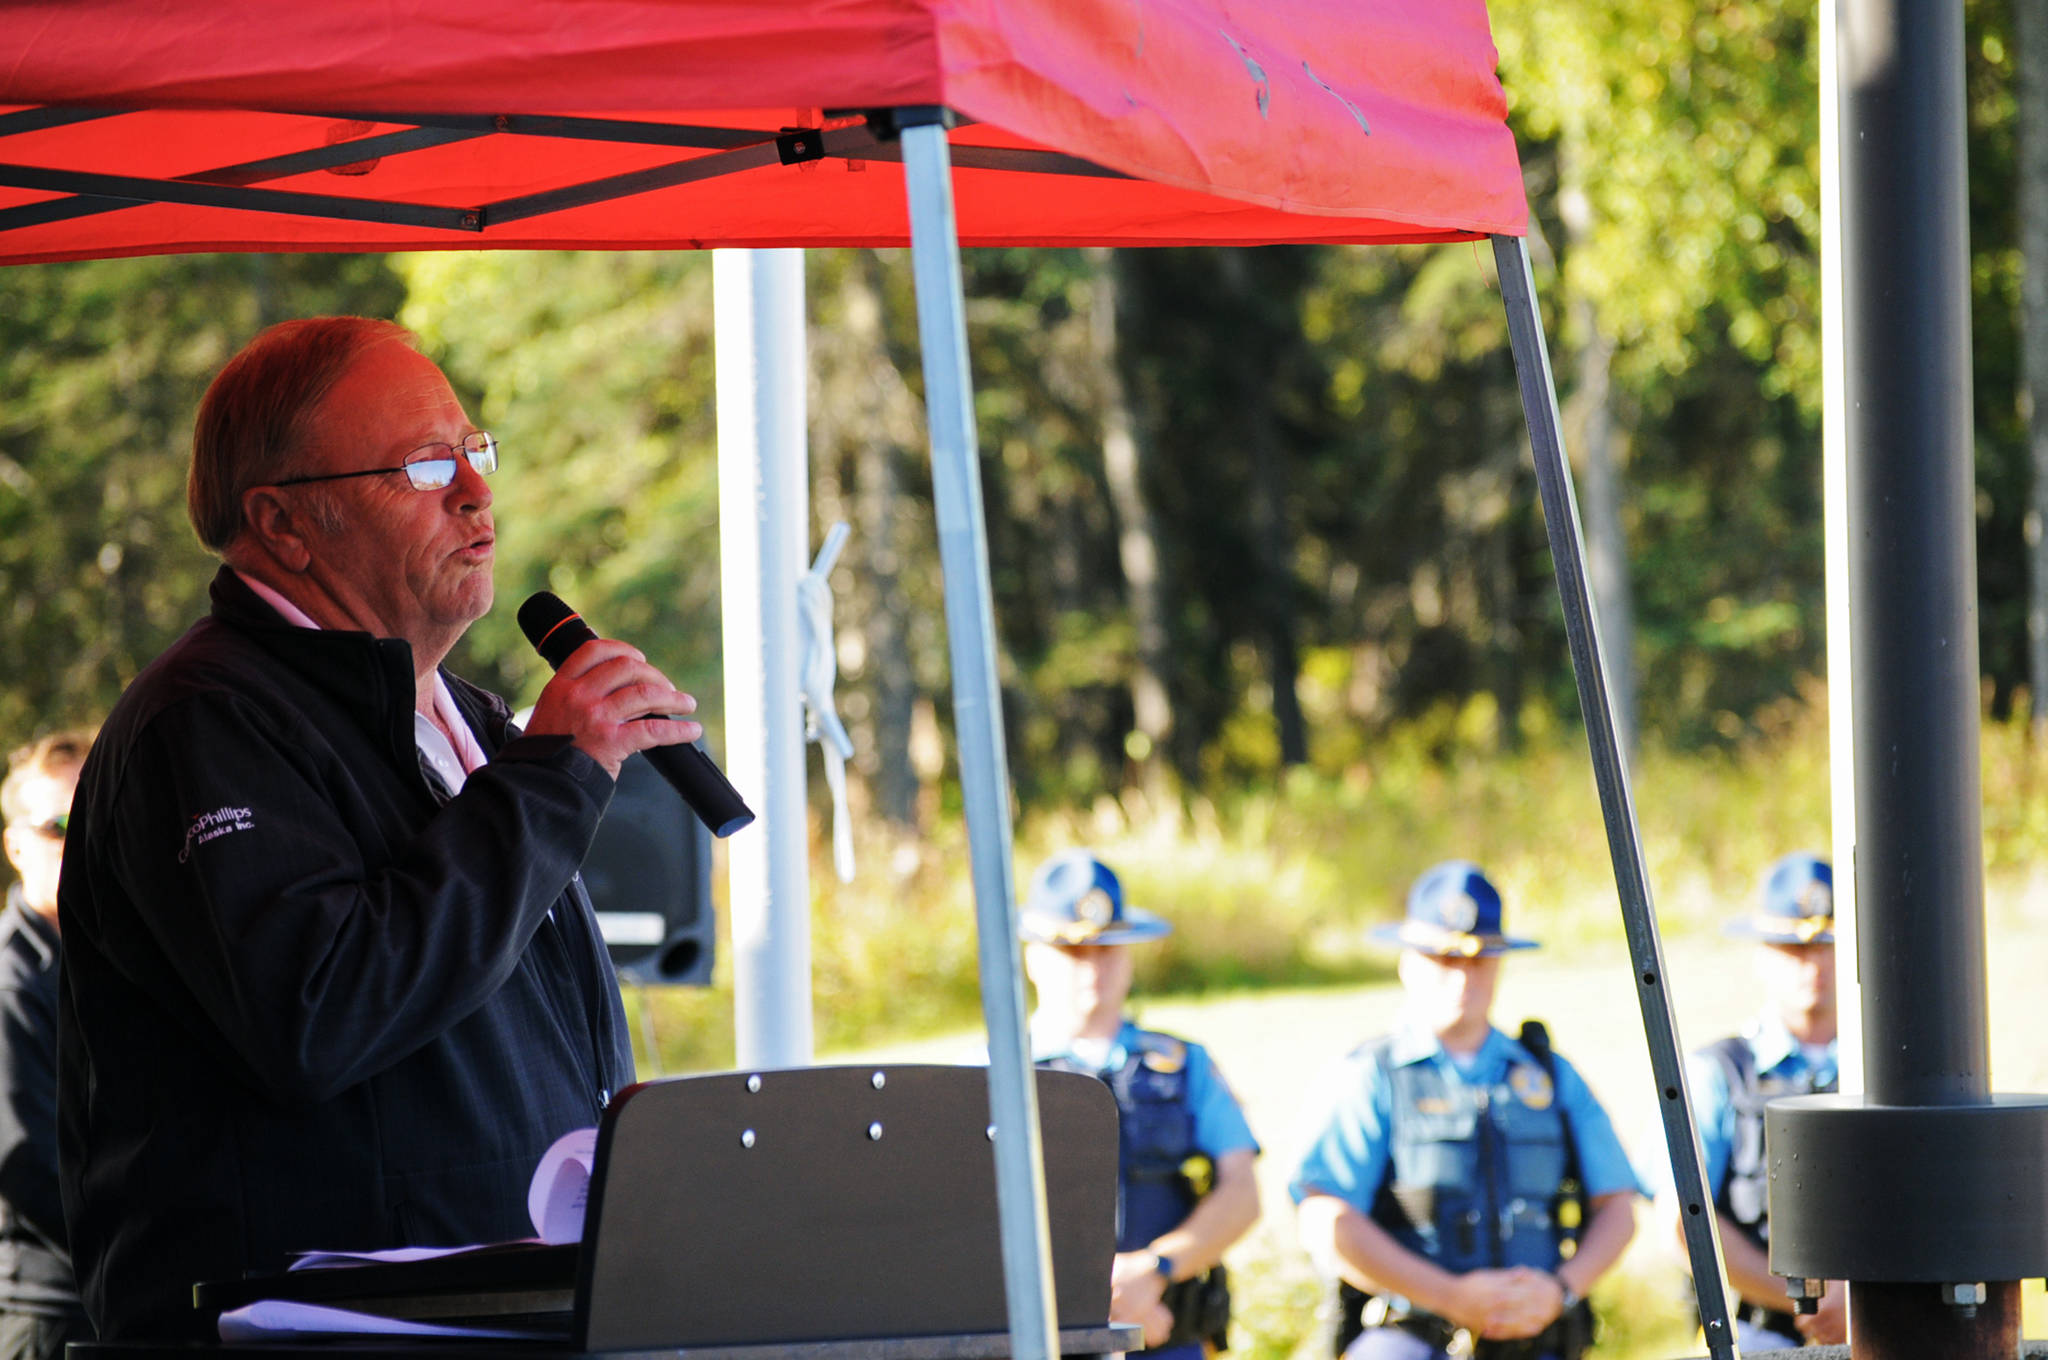 In this Sept. 9, 2016 photo, Rep. Mike Chenault (R-Nikiski) speaks at a flagpole dedication ceremony at the Nikiski Senior Center in Nikiski, Alaska. Chenault filed a letter of intent Tuesday to seek office in October 2018 and said he was gauging statewide support for a run for governor. (Photo by Elizabeth Earl/Peninsula Clarion, file)